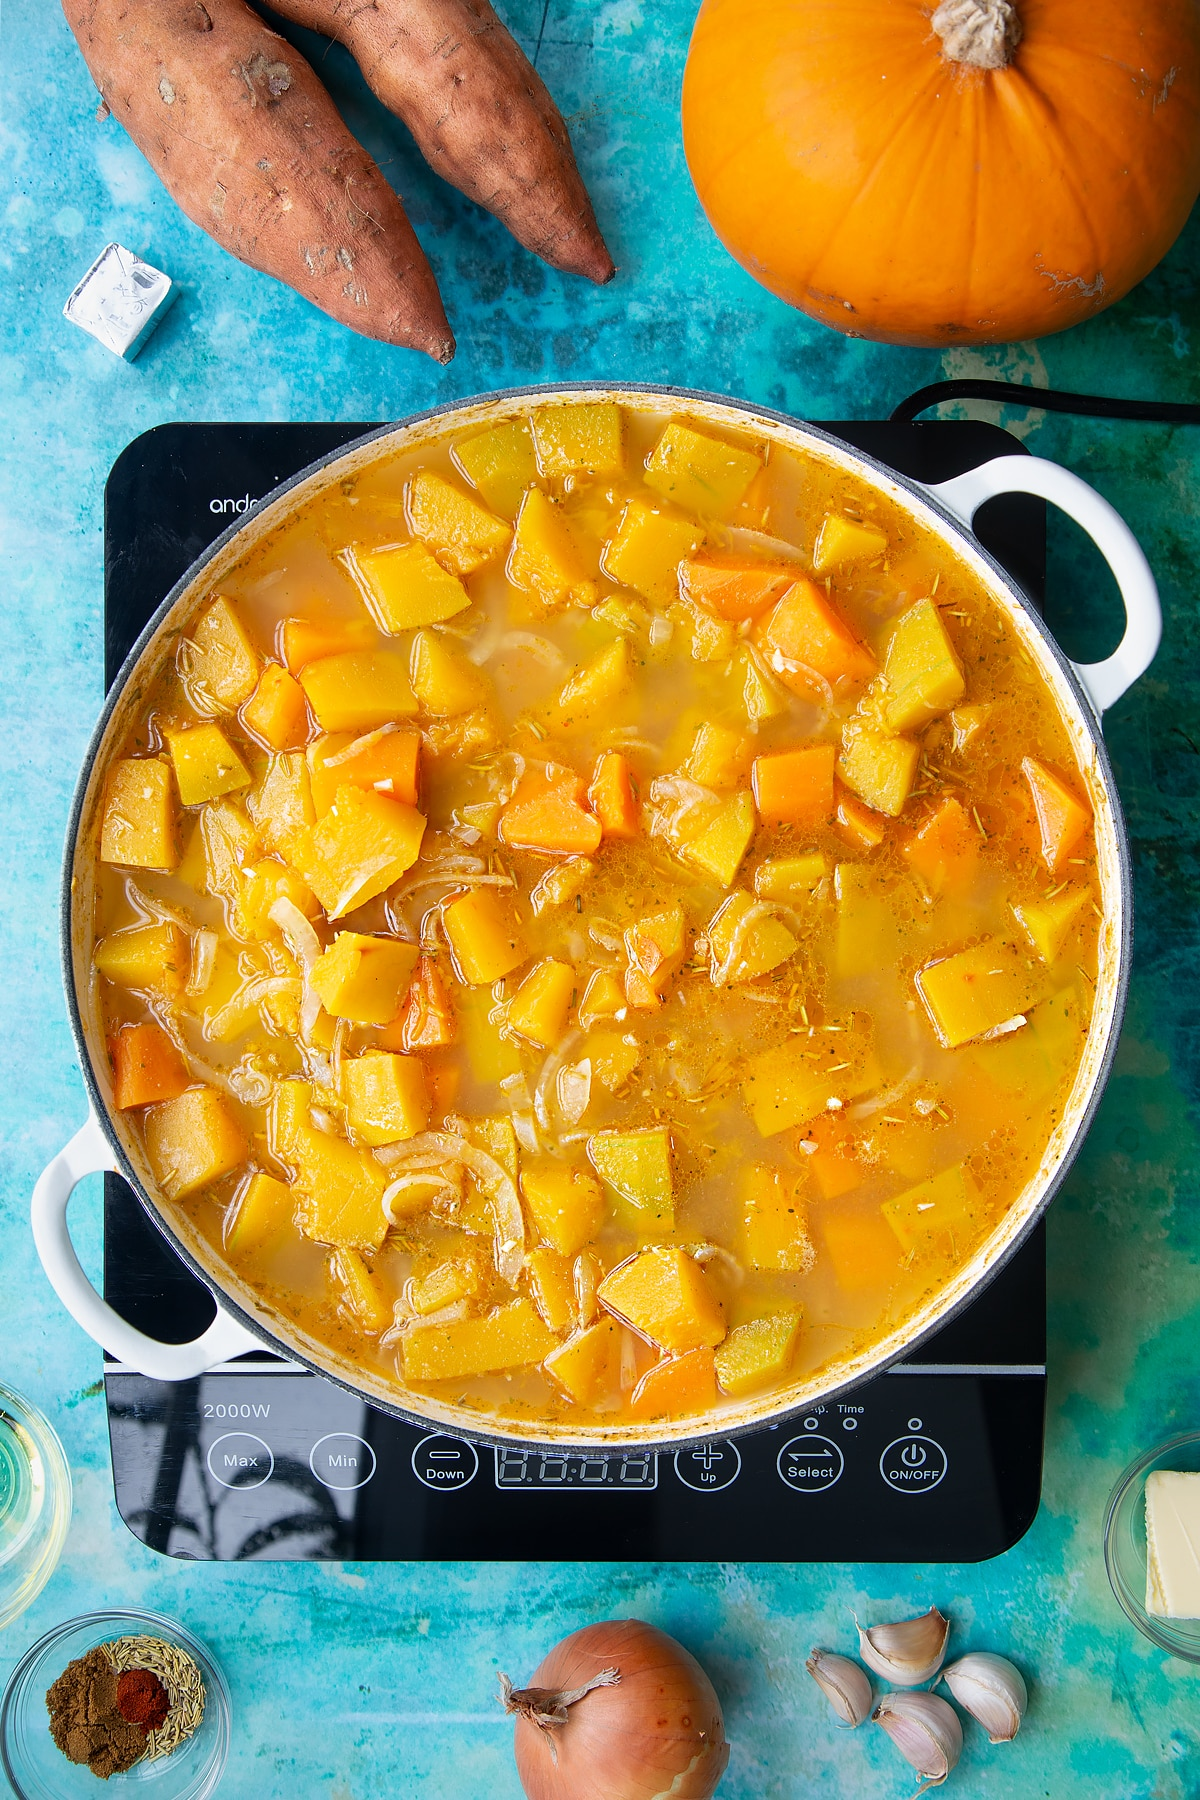 Pumpkin, sweet potato, onion and garlic cooked in stock in a large, shallow pan, from above. Ingredients to make pumpkin and sweet potato soup surround the pan.